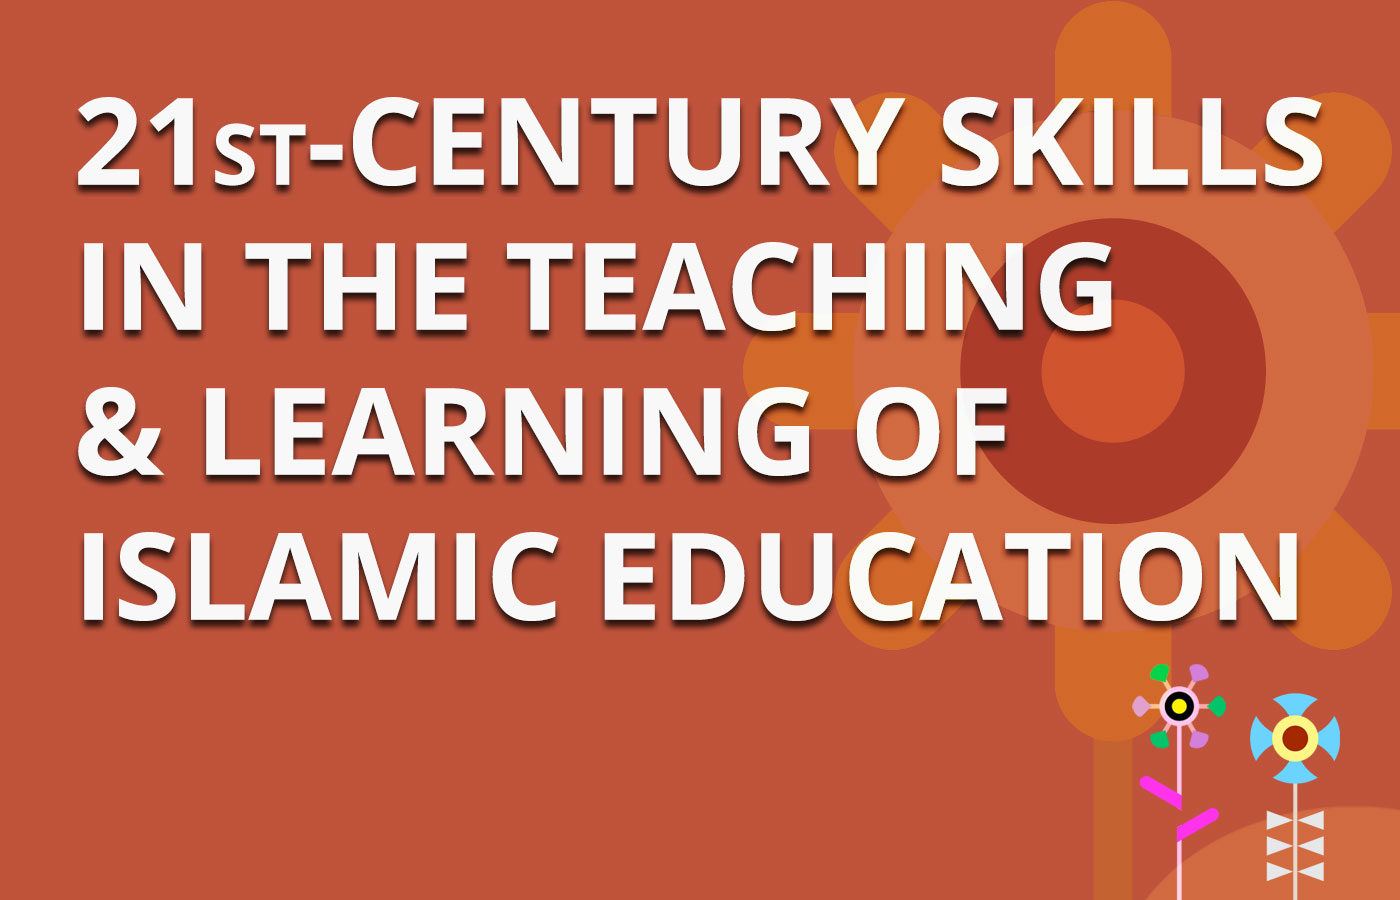 Seminar on 21st-Century skills in the Teaching & Learning of Islamic Education